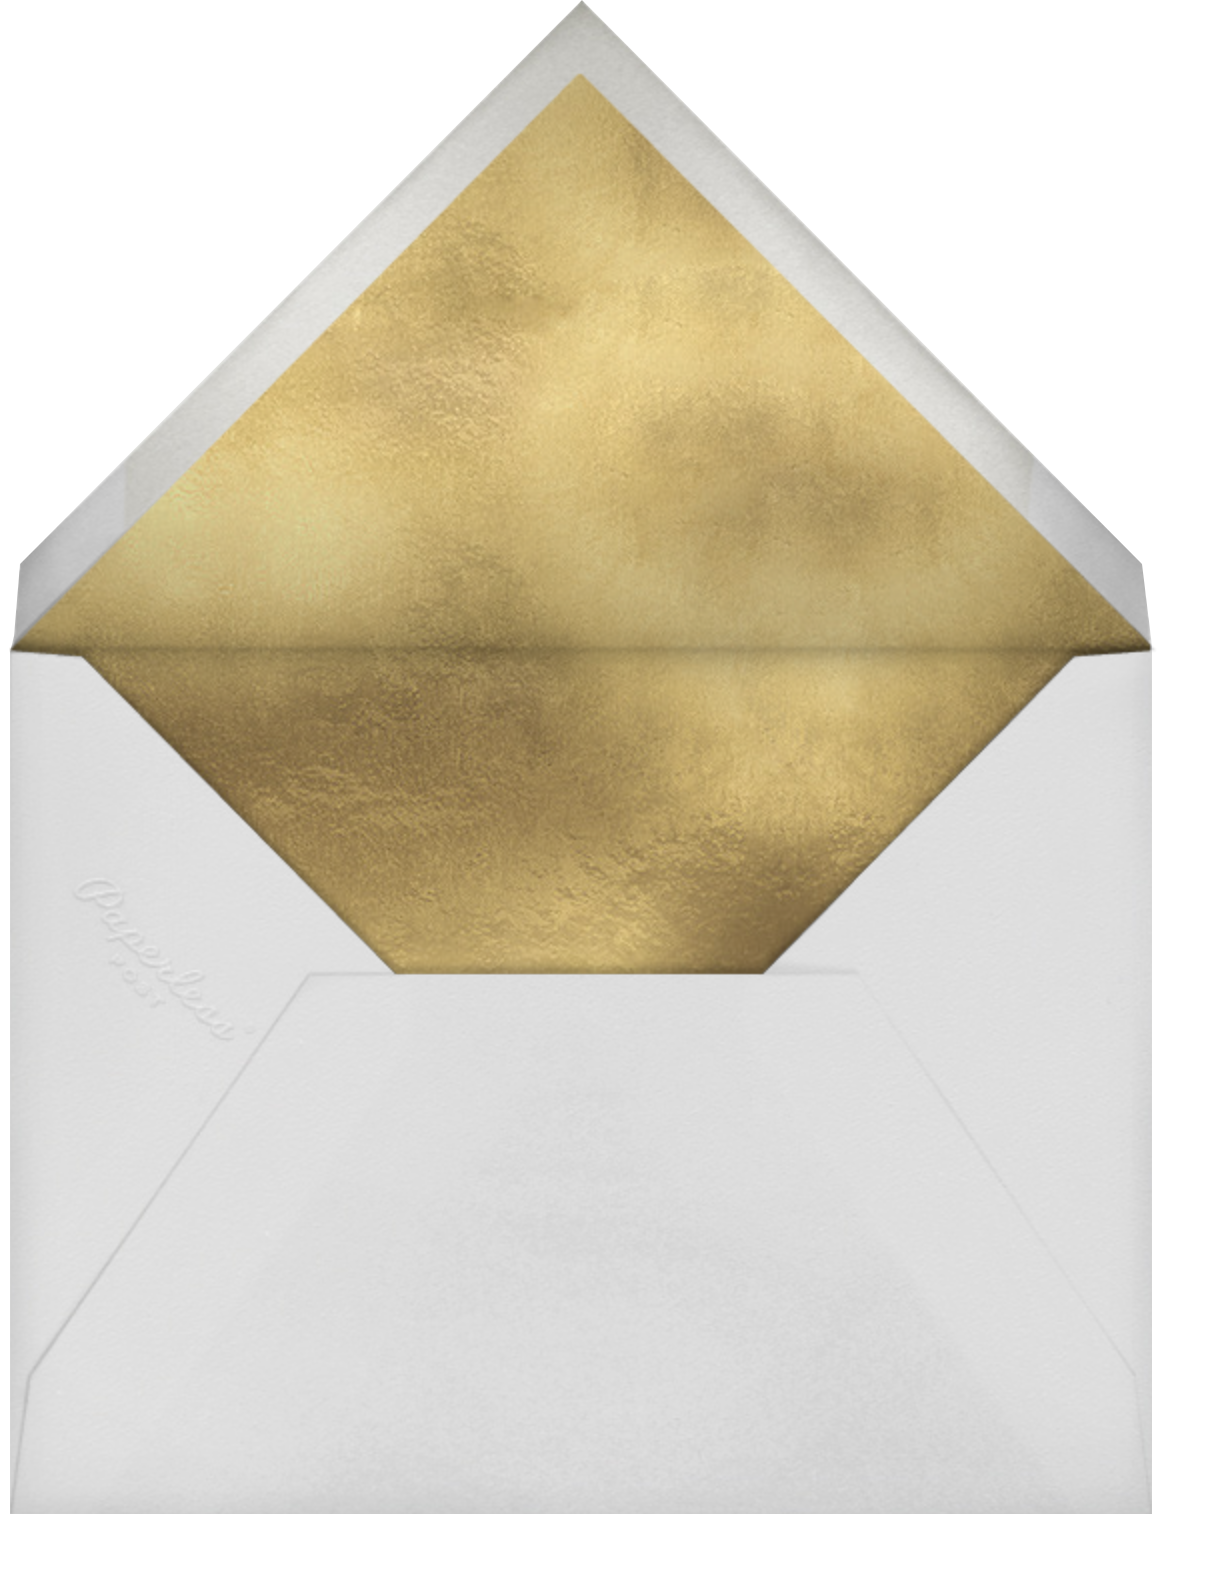 Poppy New Year - Rifle Paper Co. - New Year - envelope back